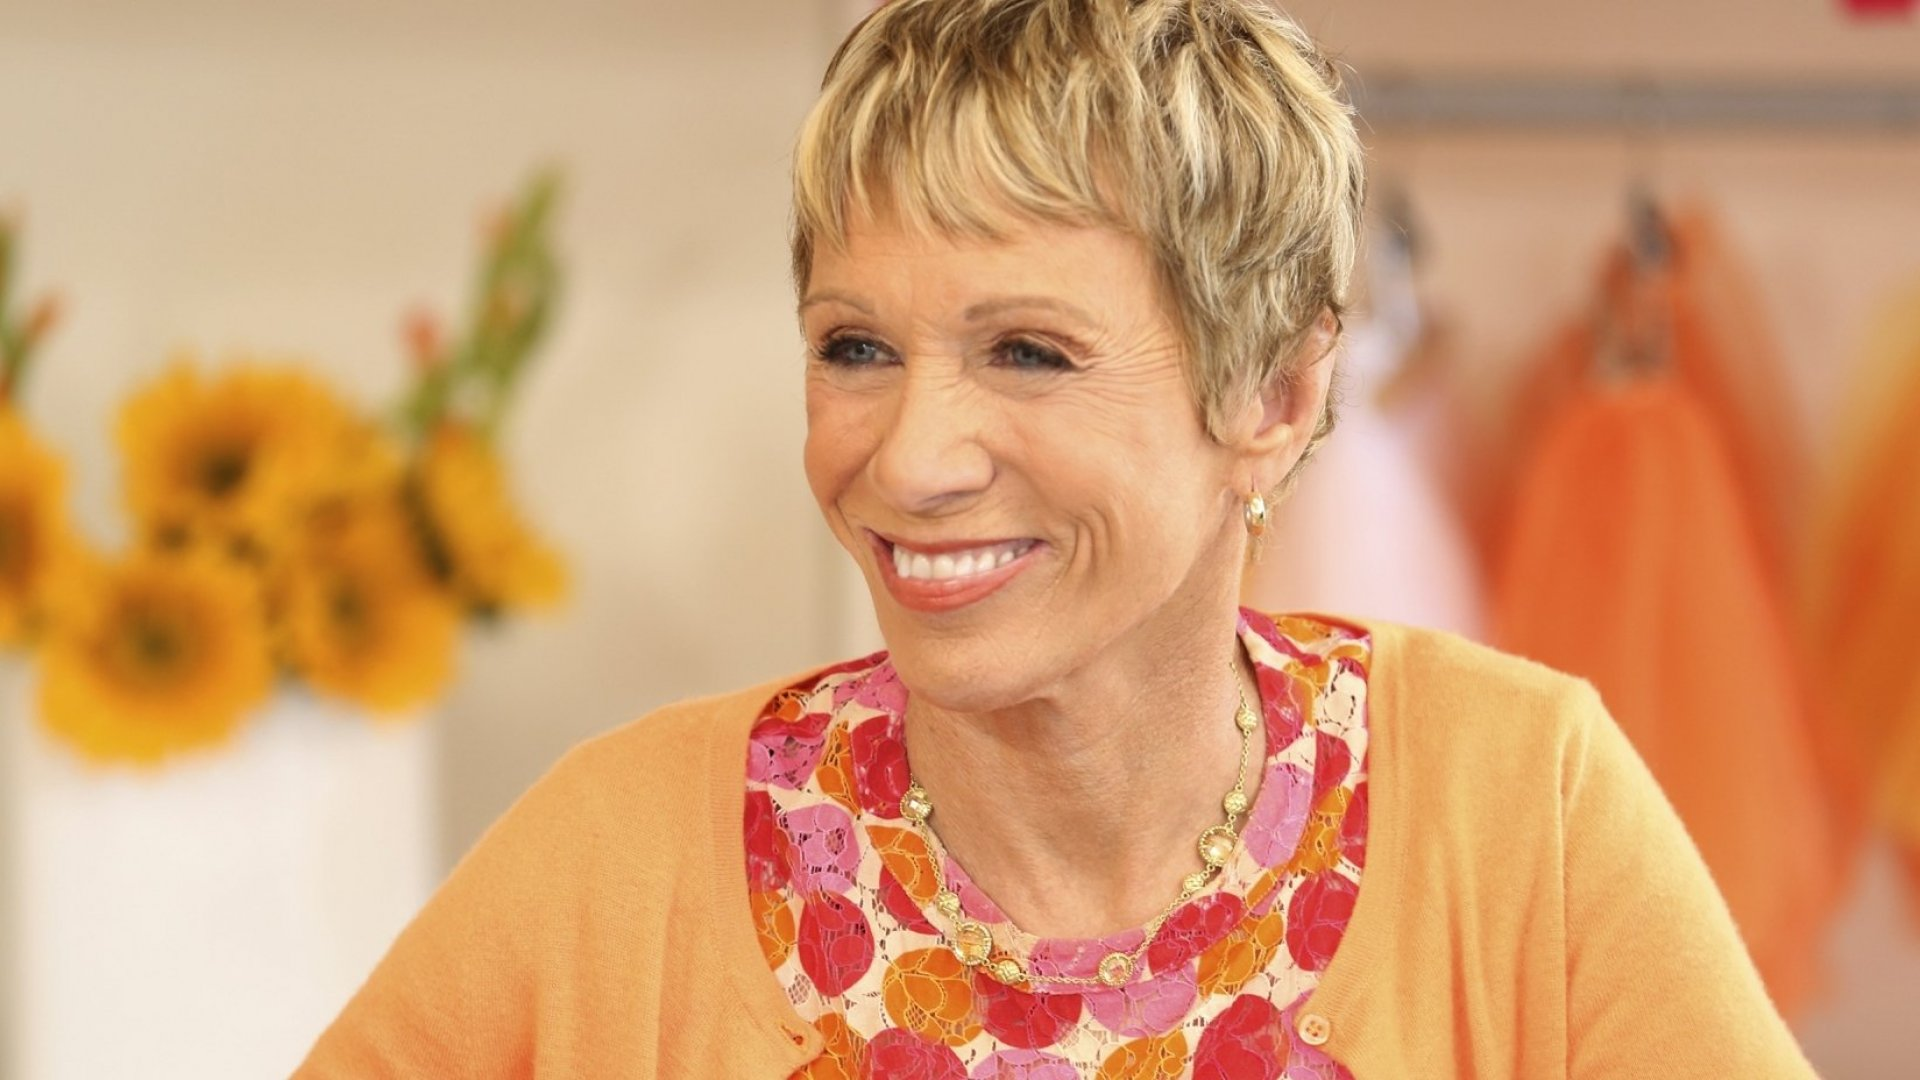 Barbara Corcoran Doesn't Reply to Emails. Instead, Everyone Gets This Brilliant Auto-Reply